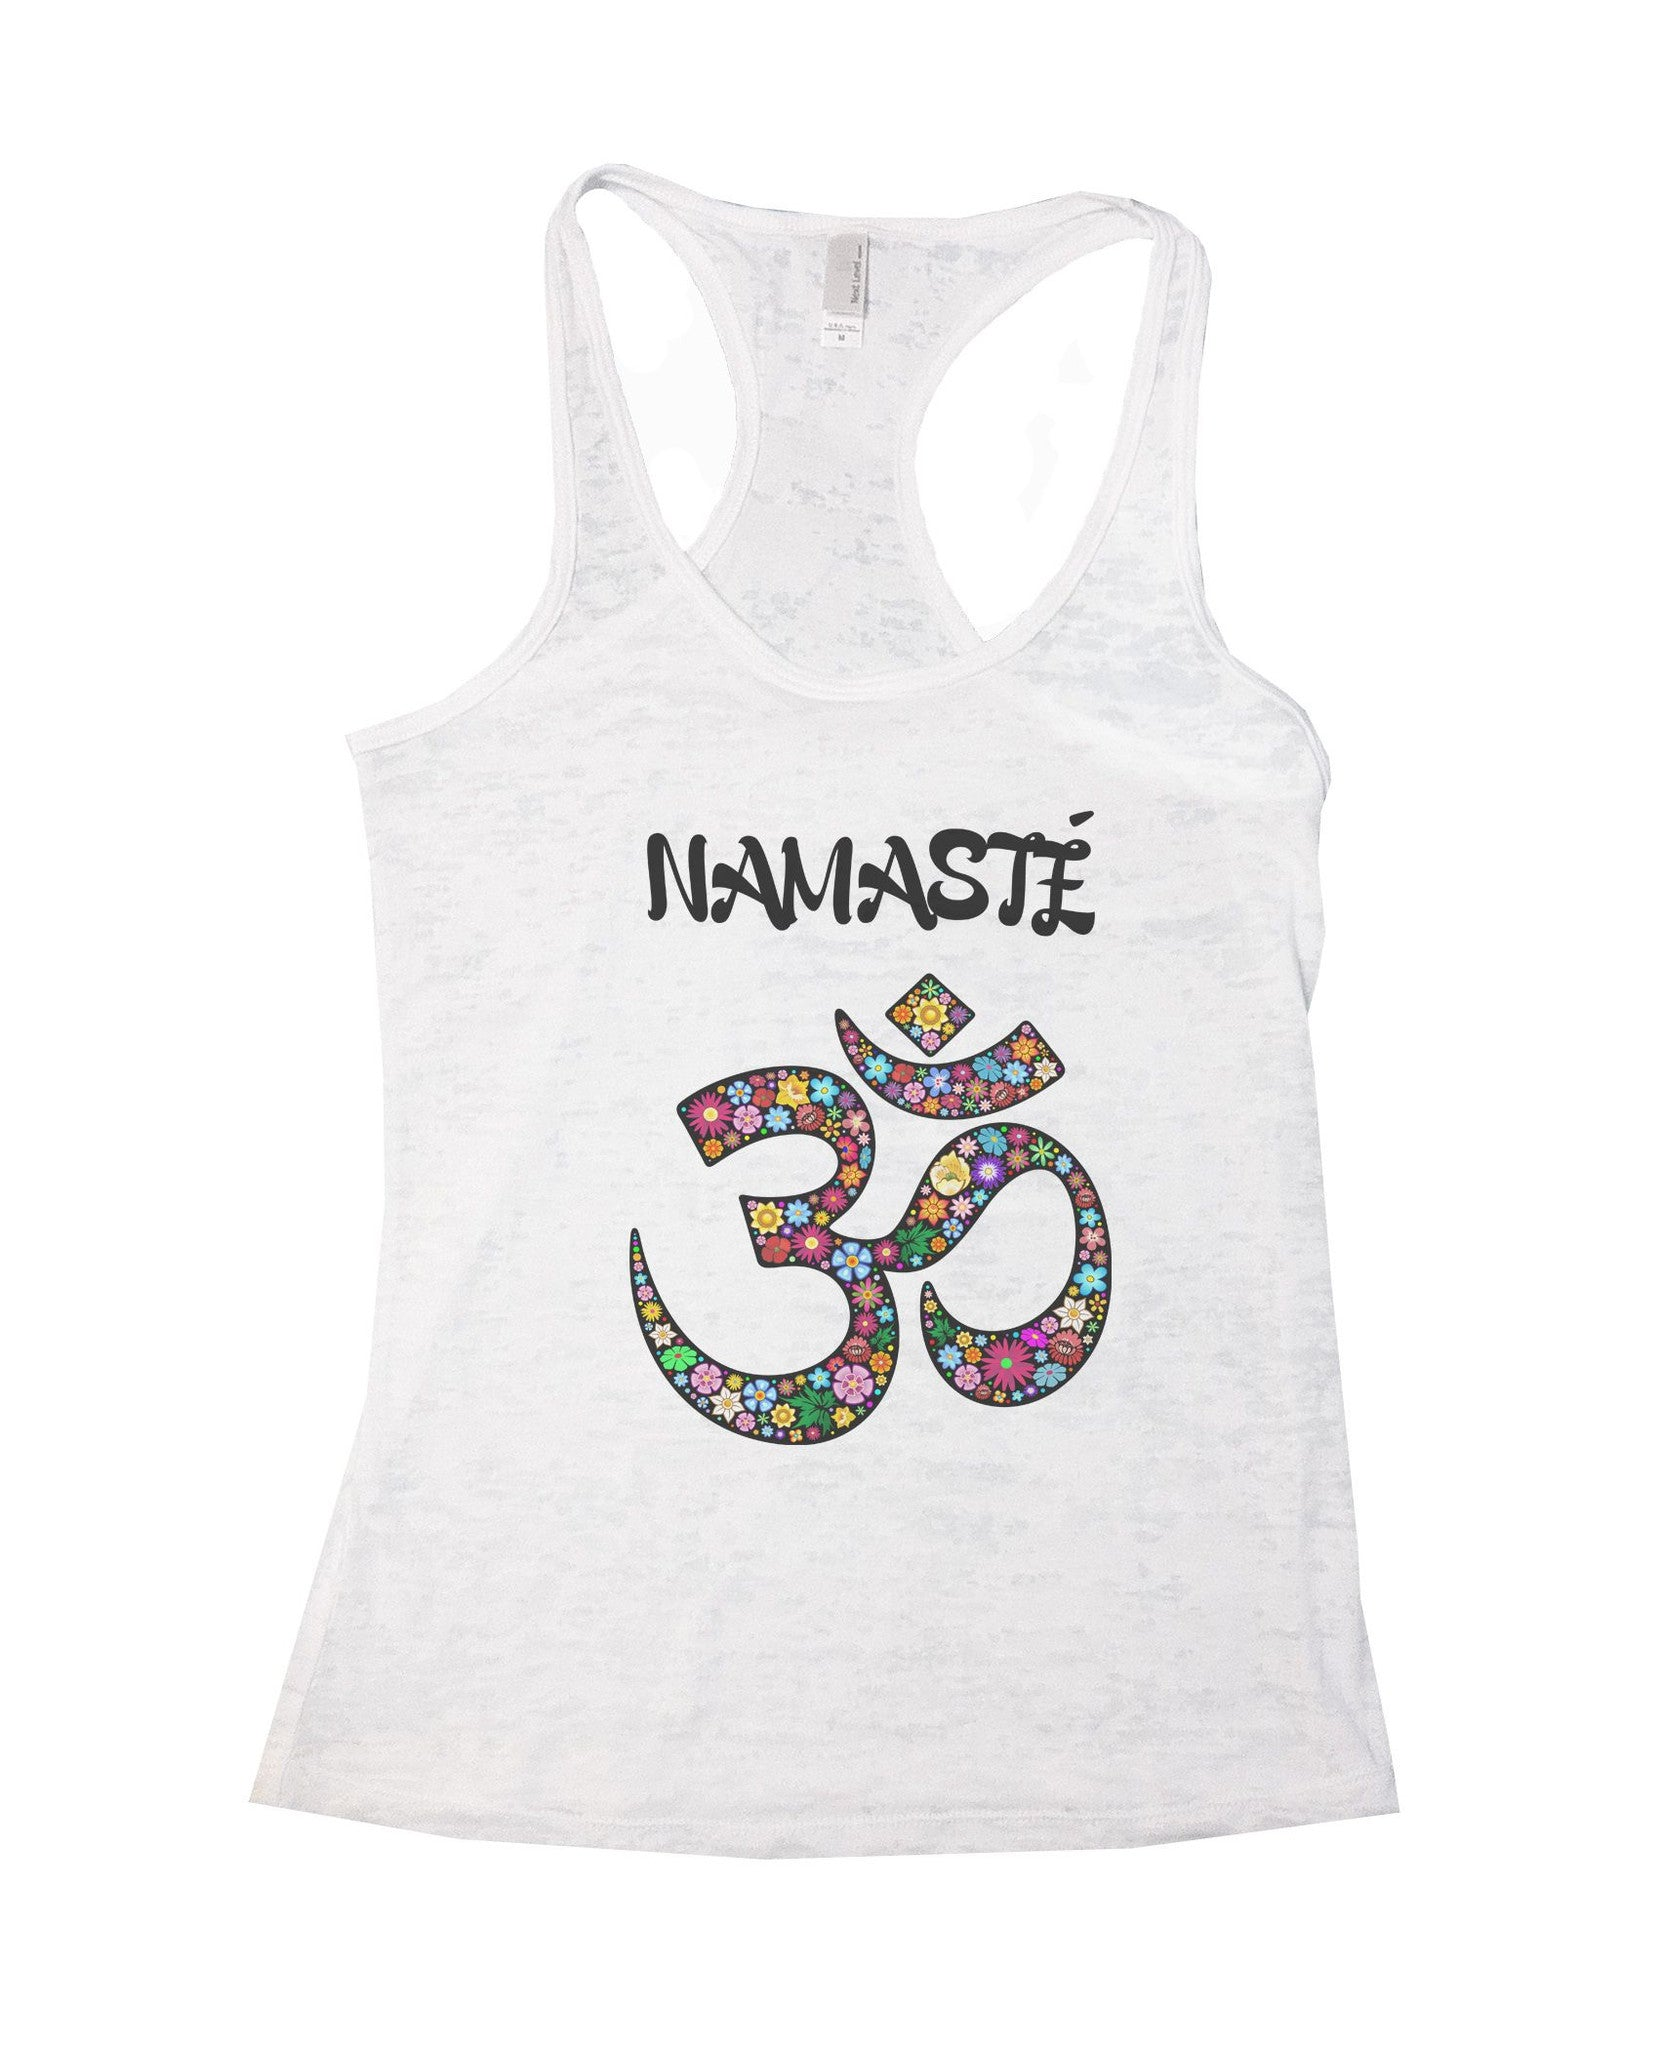 Namaste Burnout Tank Top By BurnoutTankTops.com - 713 - Funny Shirts Tank Tops Burnouts and Triblends  - 5